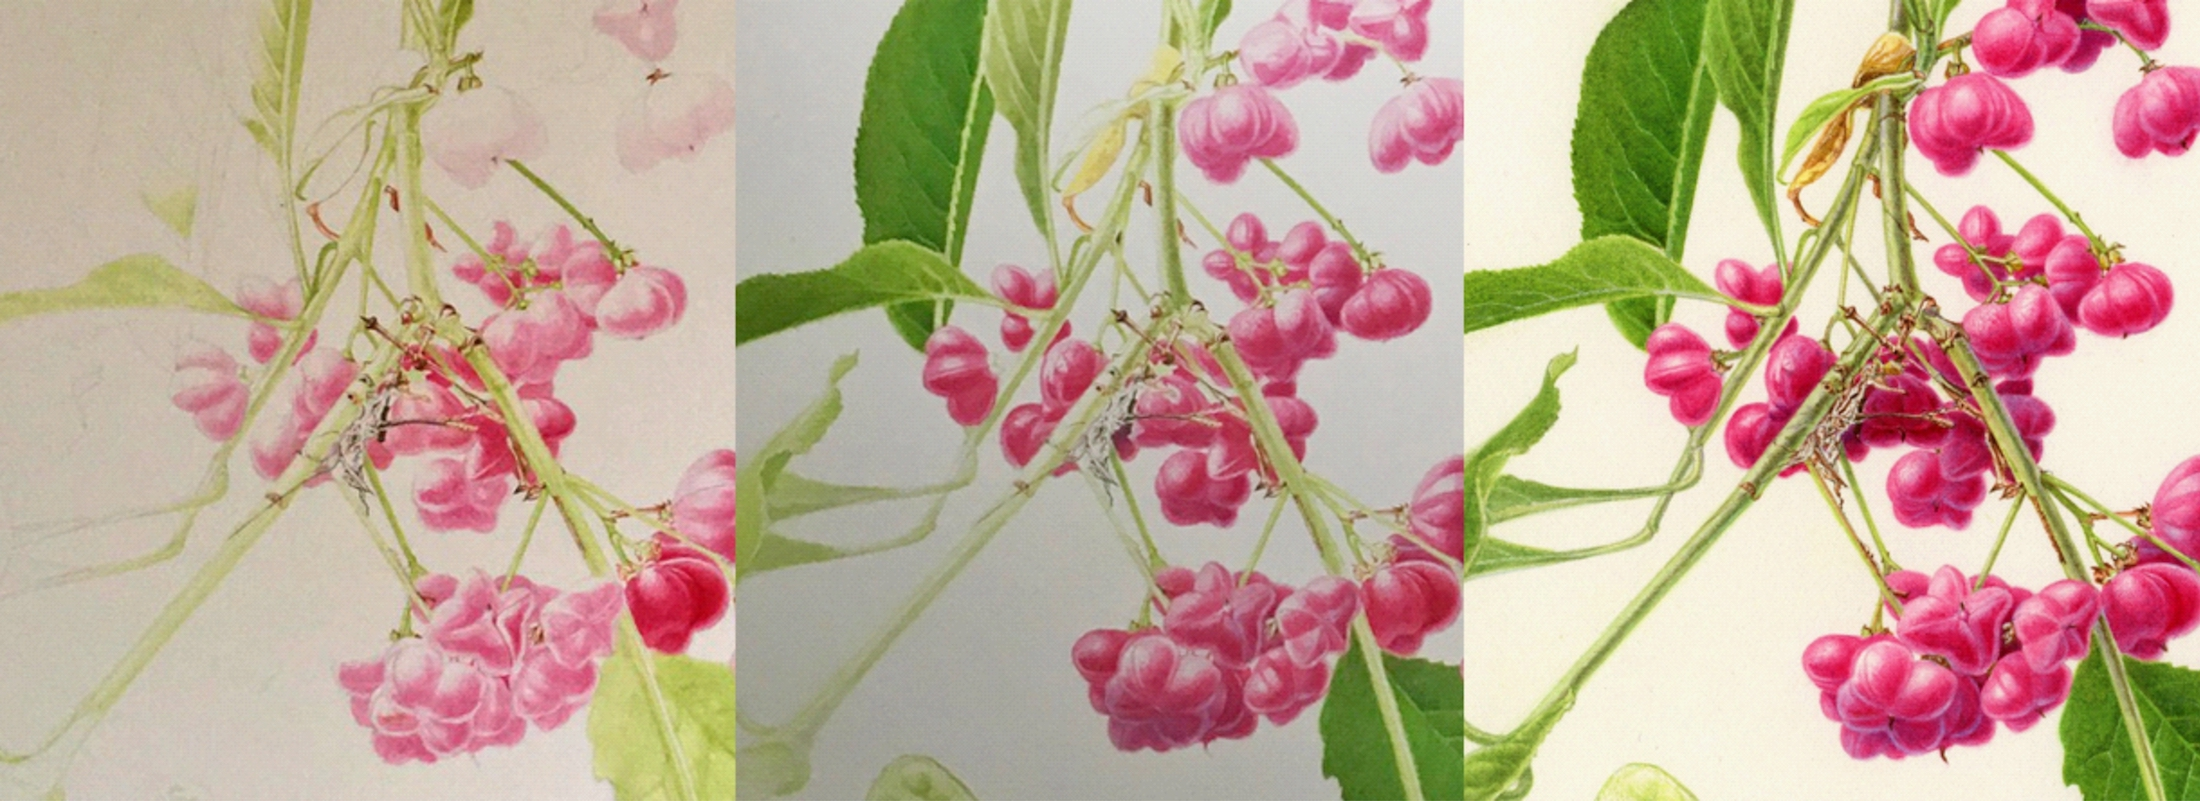 Sandra Doyle, Spindle In progress, Ruskin's Footsteps, Worldwide Day of Botanical Art